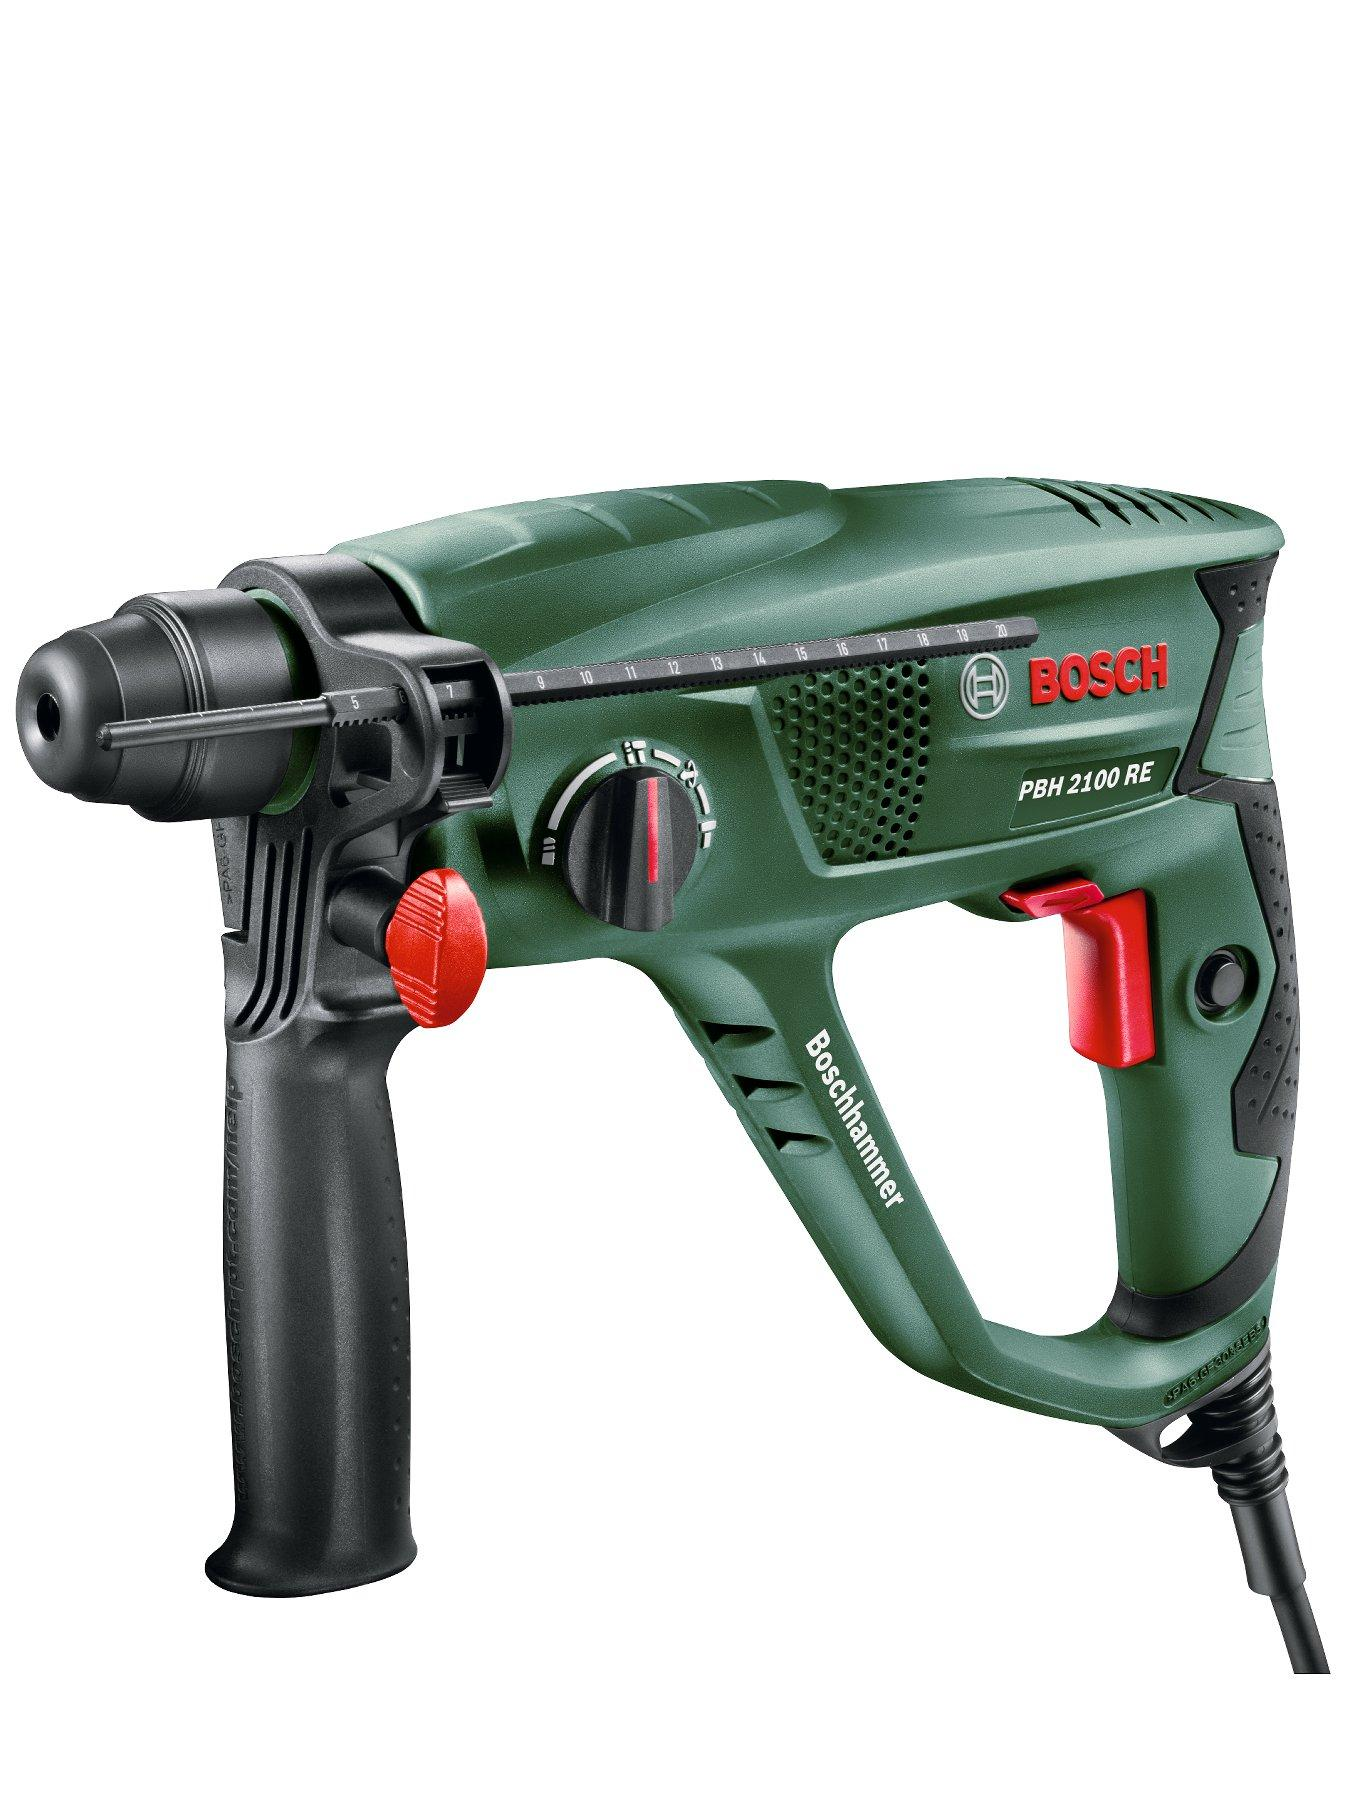 PBH 2100 RE 550-watt Rotary Hammer Drill